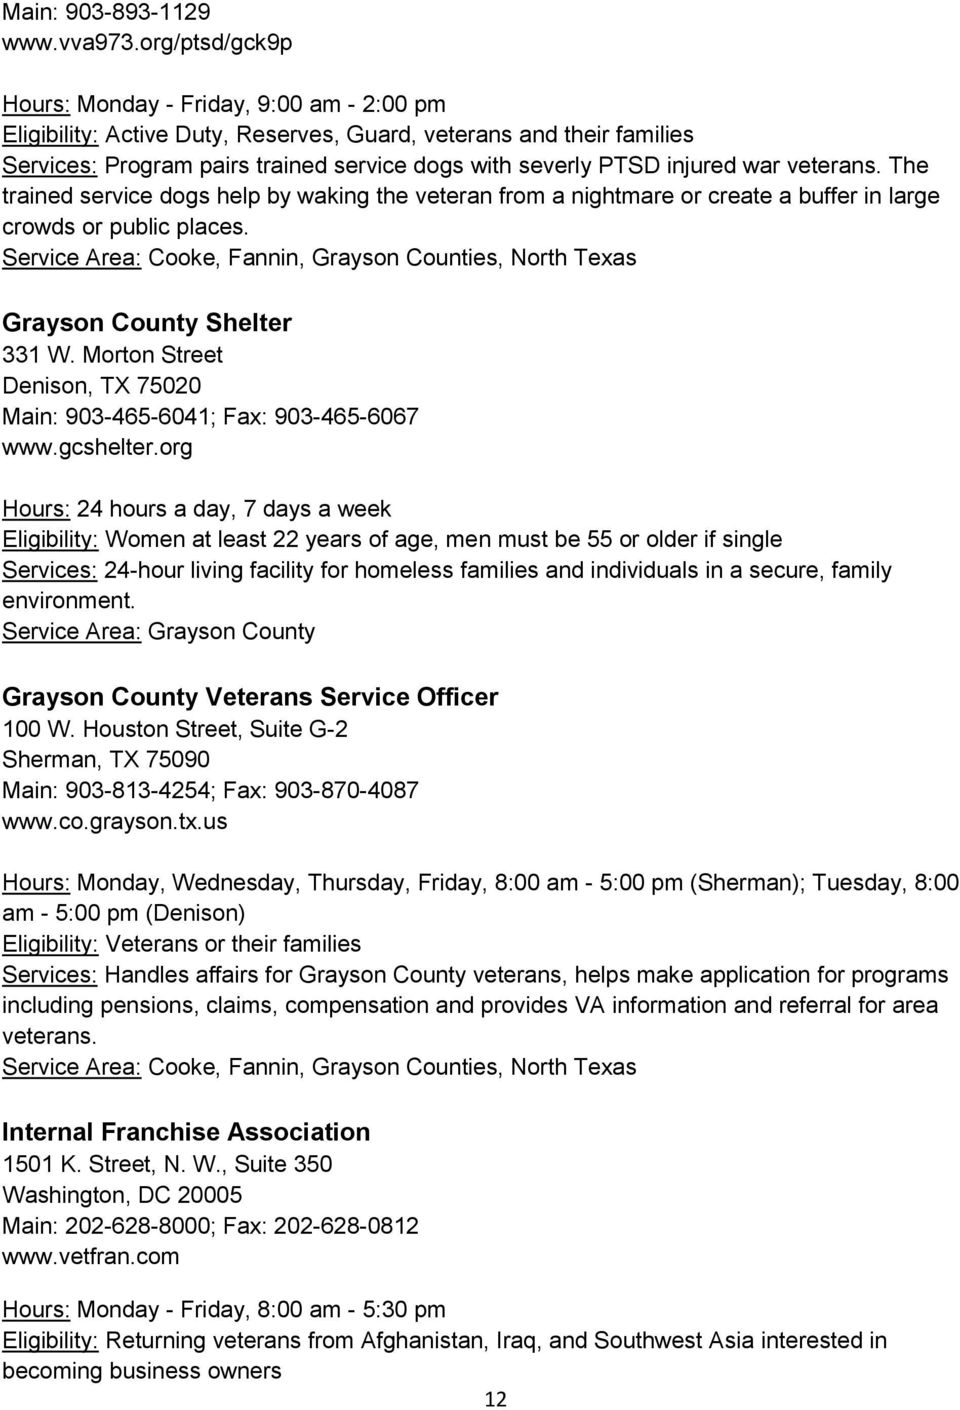 The tred service dogs by wkg vetern from nightmre or crete buffer lrge crowds or public plces. Service re: Cooke, Fnn, Gryson Counties, North Texs Gryson County Shelter 331 W.